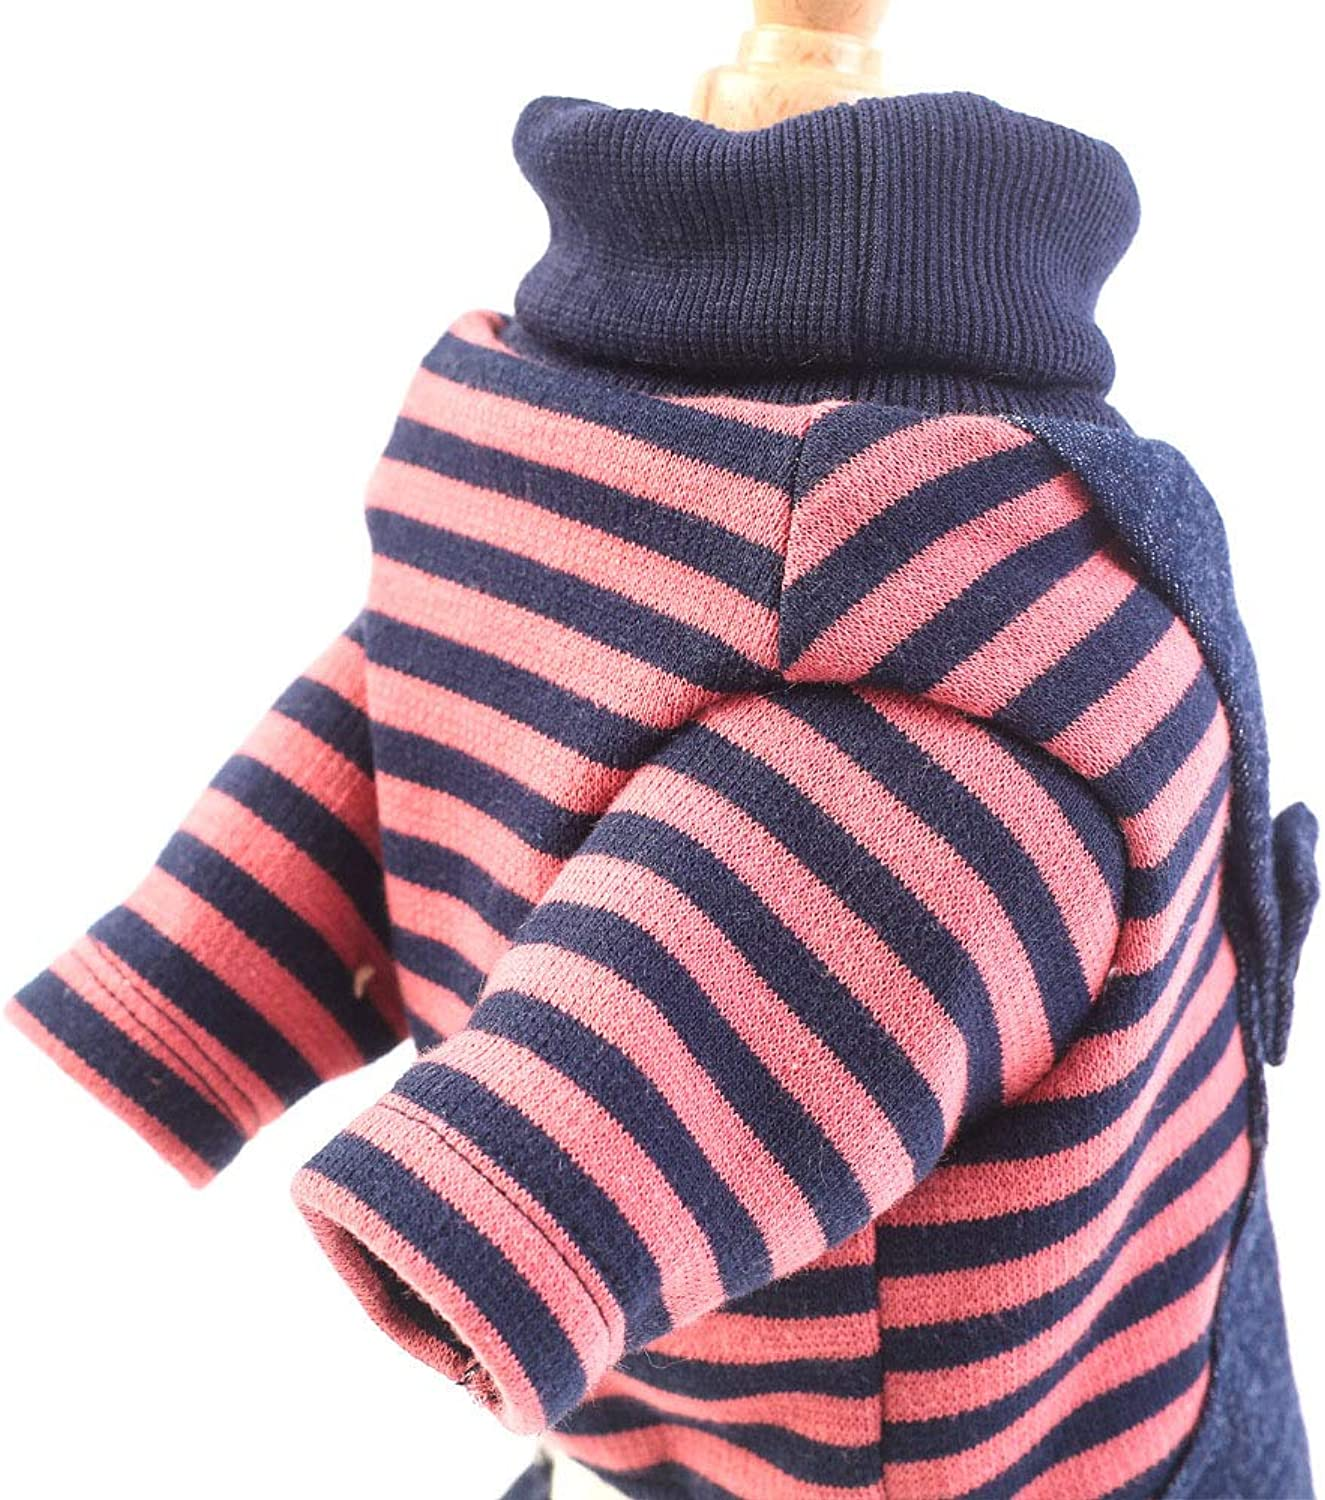 Cute Dog Clothes Thick Warm Puppy Coat Apparel for Walking Jogging Warm Coat,Red,S